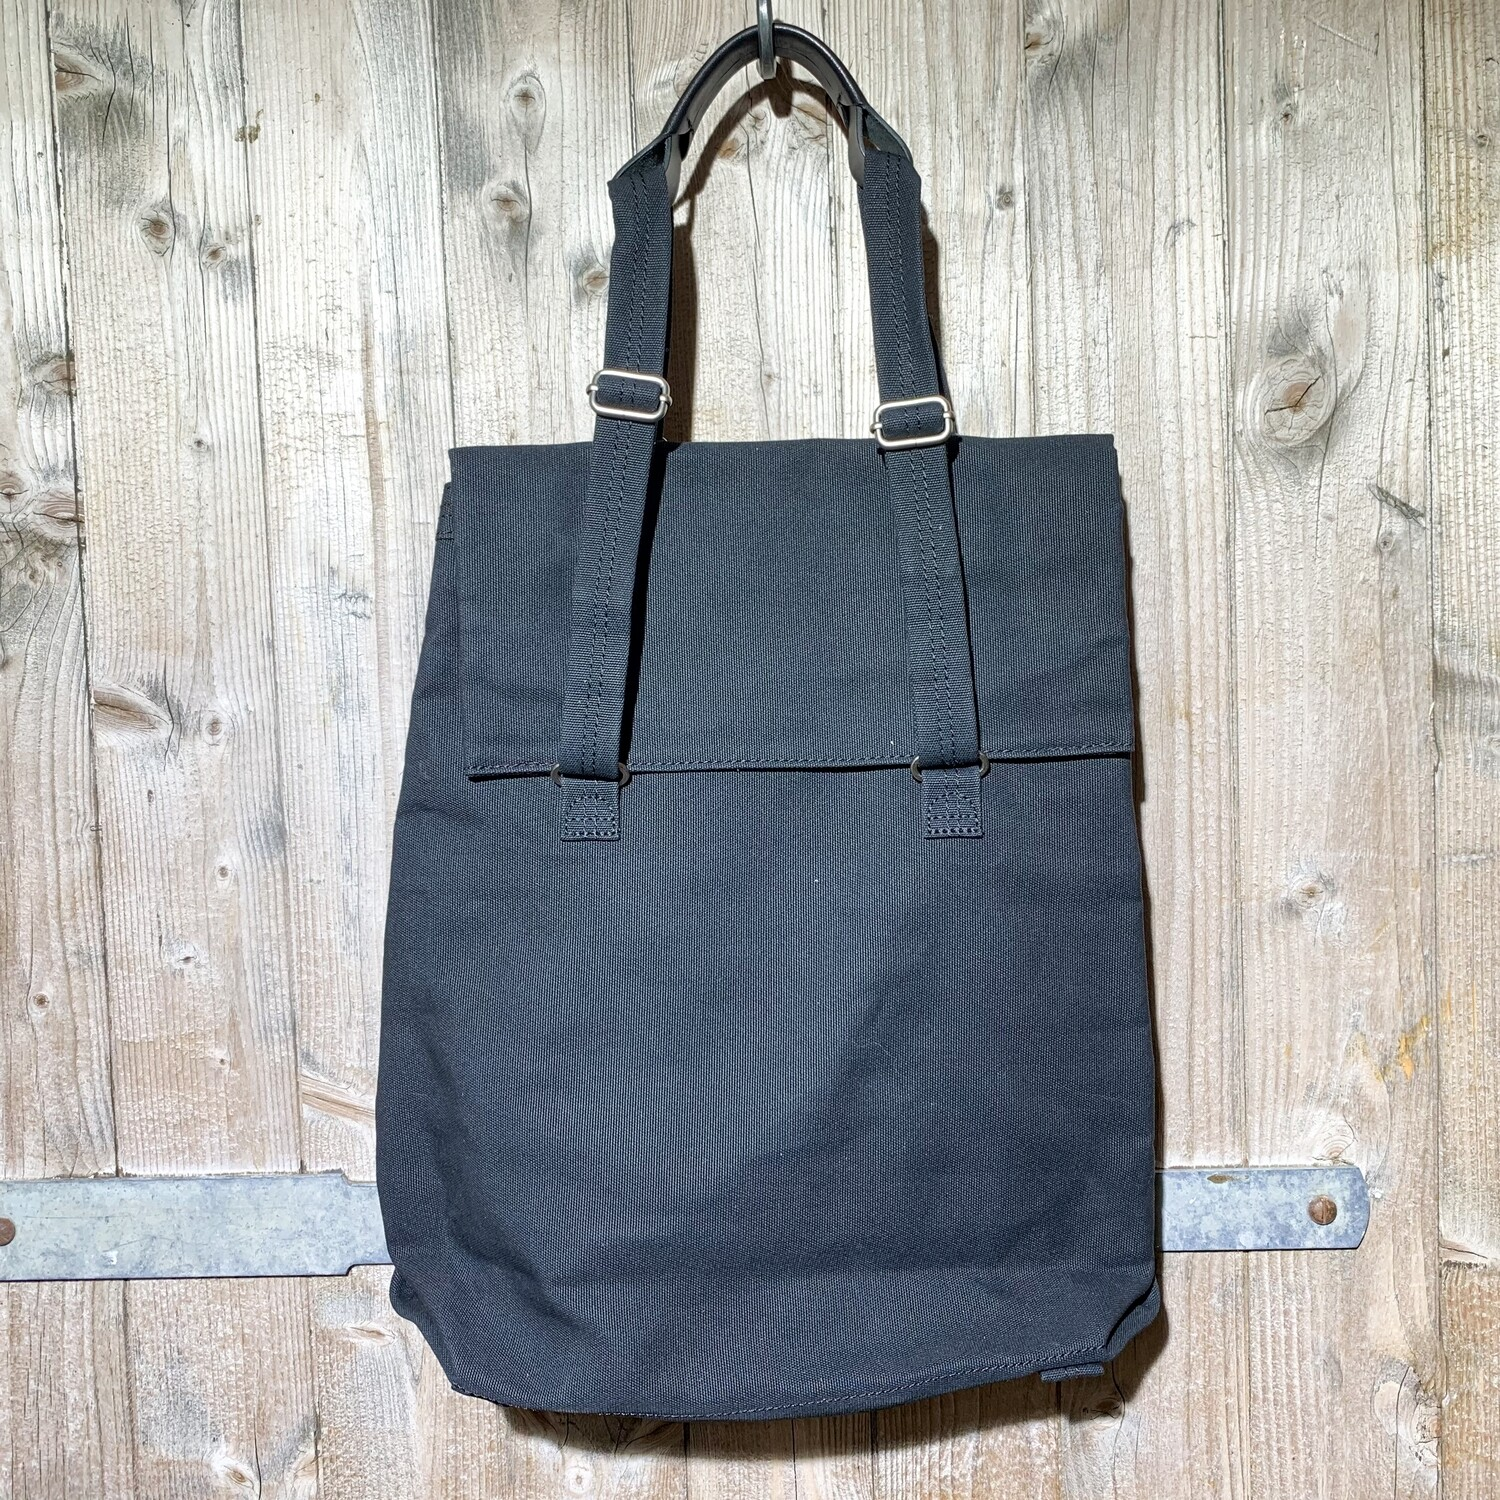 QWSTION – Flap Tote Medium All Black